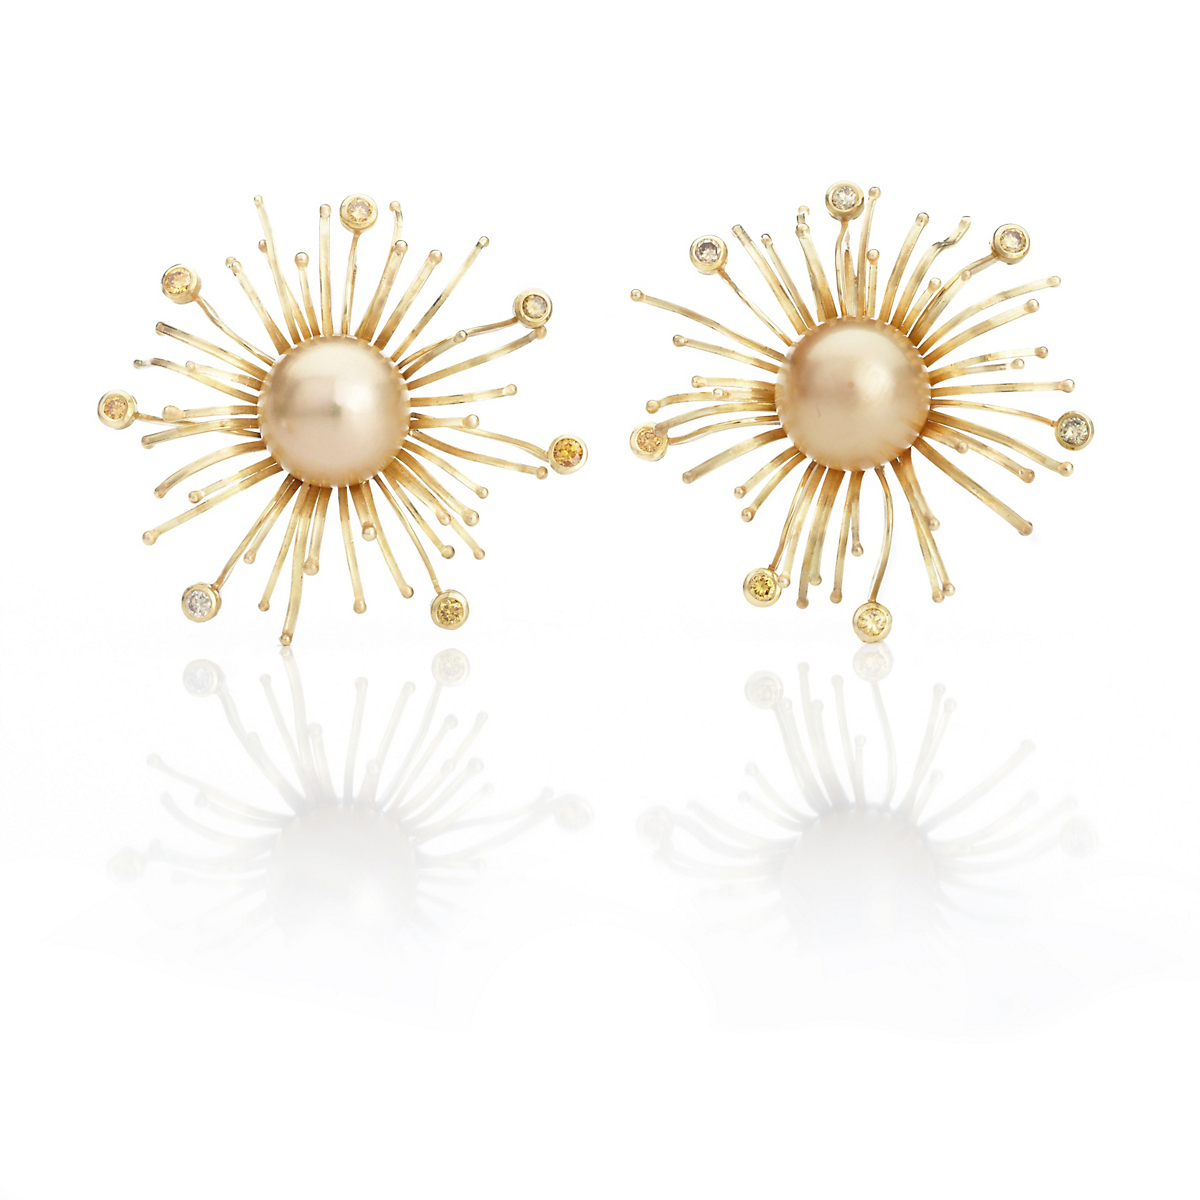 Barbara Heinrich Golden Pearl Sunburst Earrings